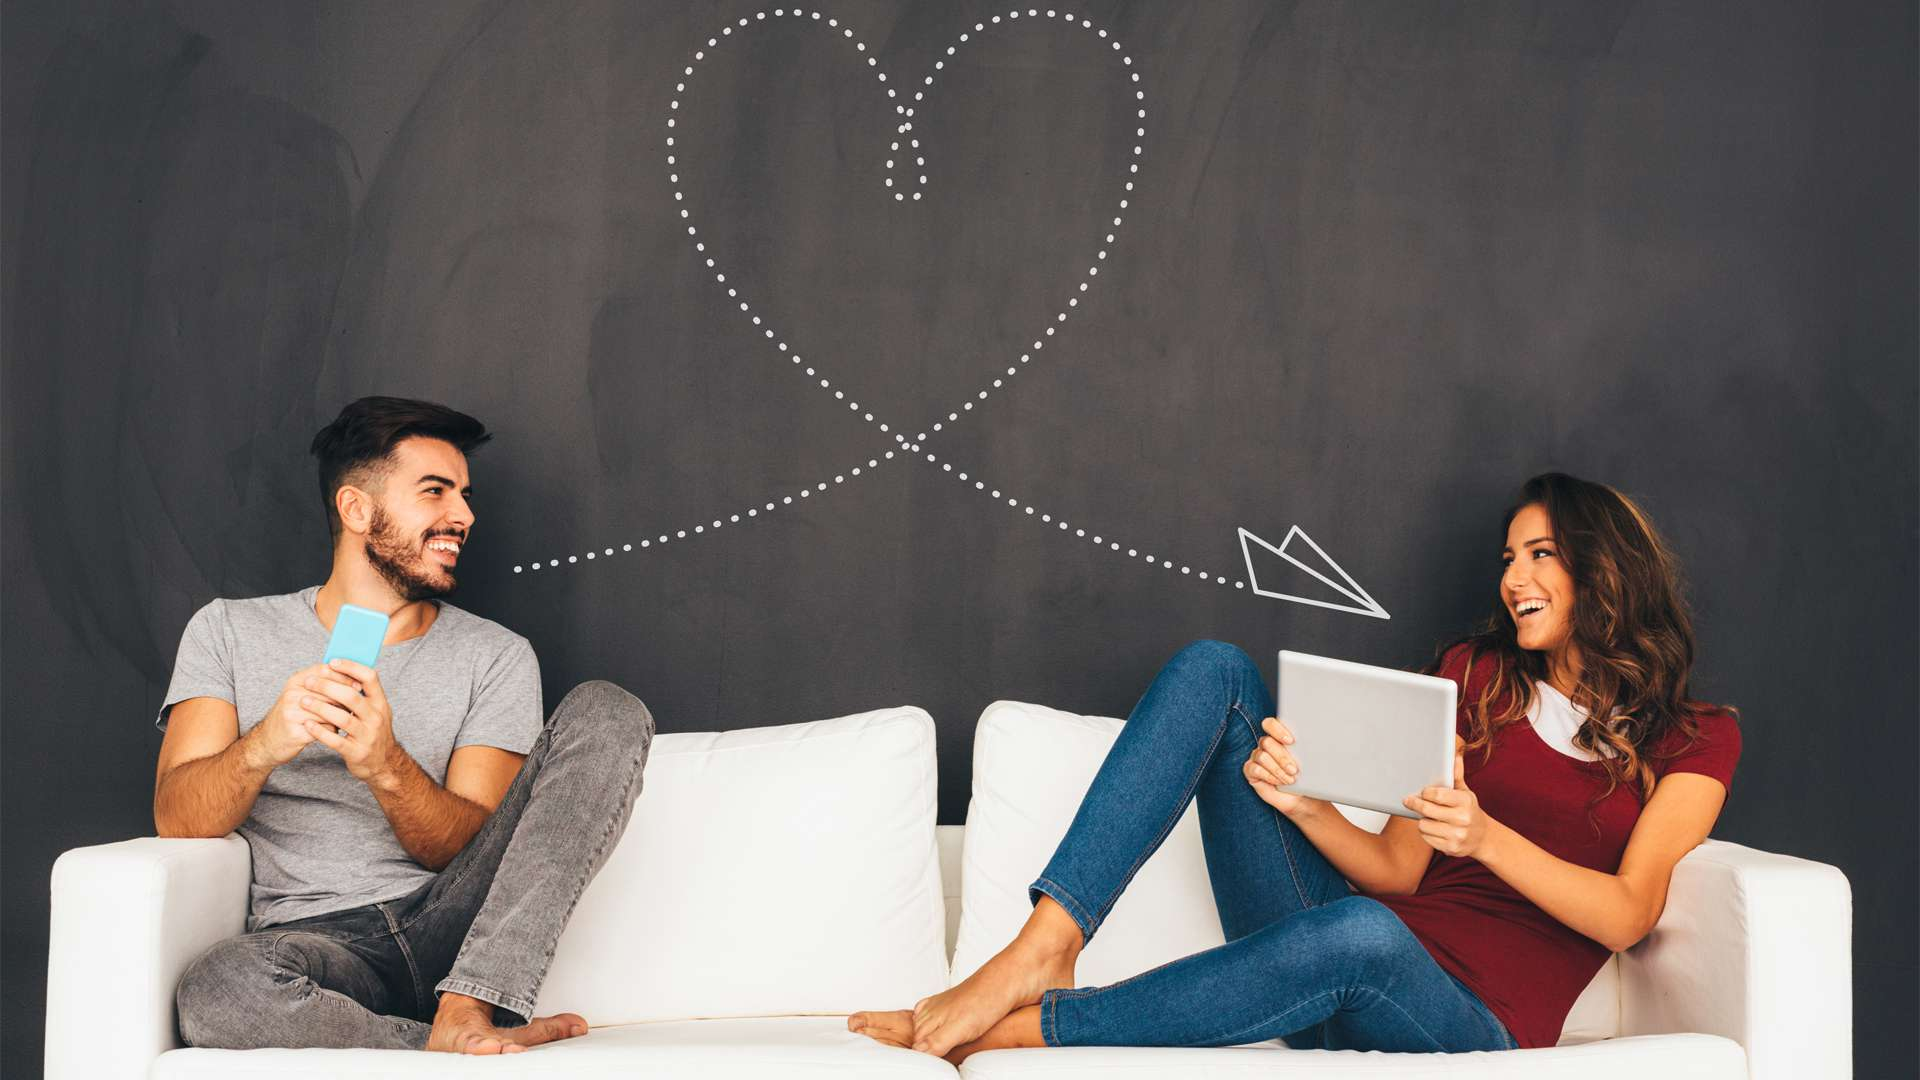 Man and woman sitting on a white couch sending computer files to each other via the OneDrive cloud service